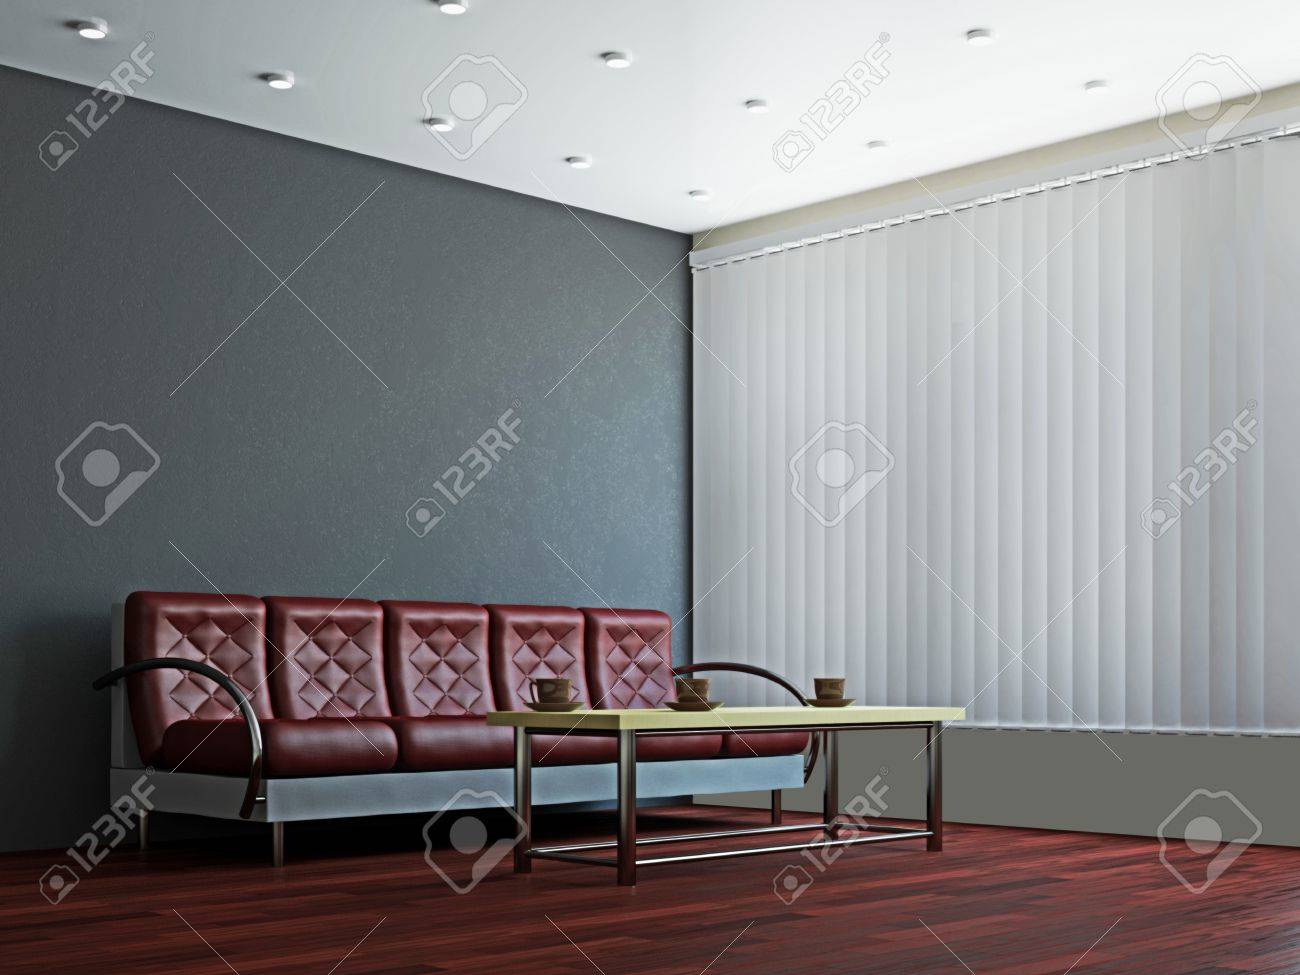 A room interior with a sofa and a table Stock Photo - 16249135